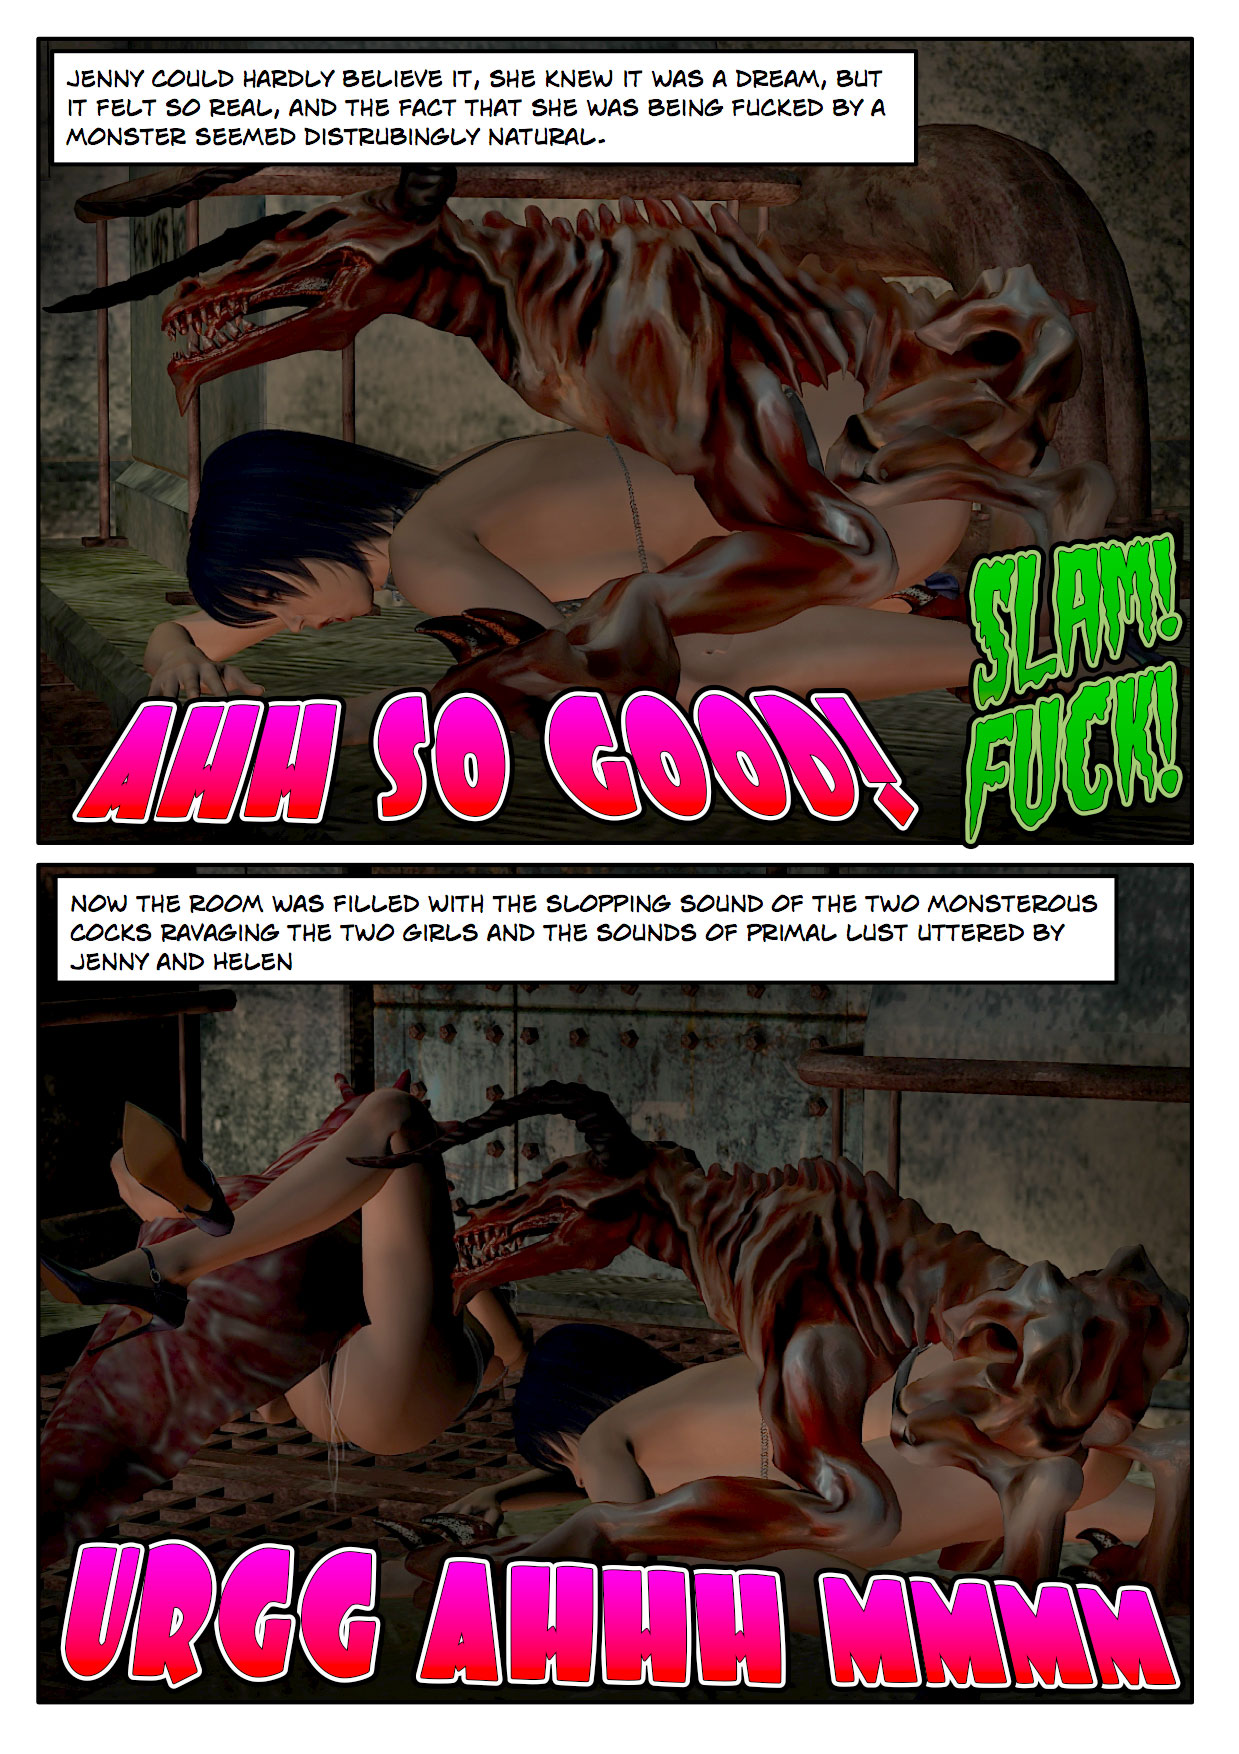 Girl fucked by monster game adult pic